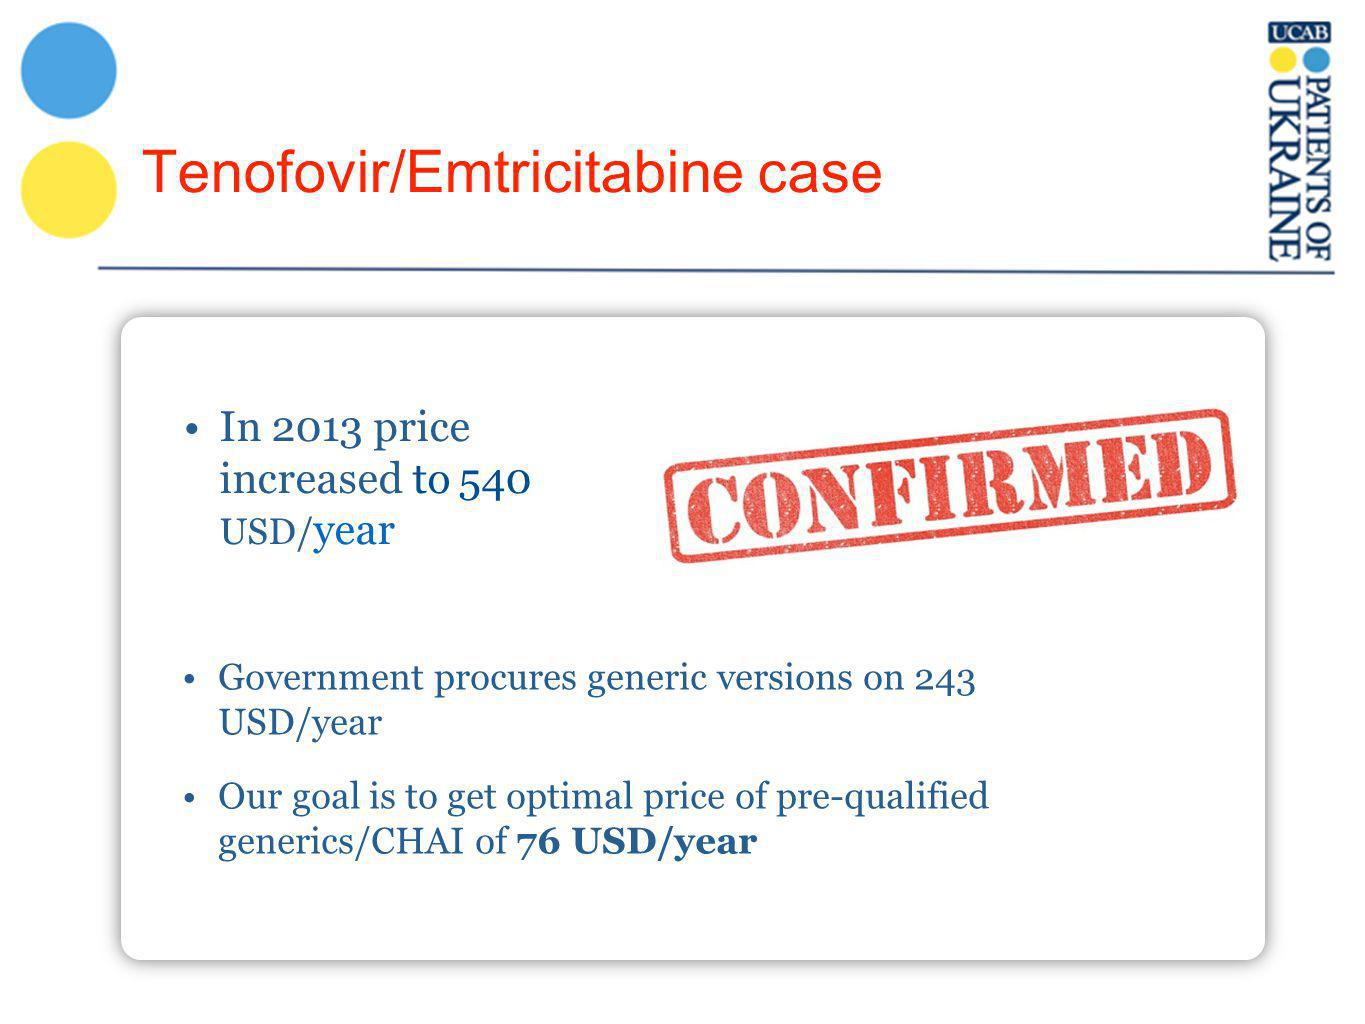 Tenofovir/Emtricitabine case In 2013 price increased to 540 USD/ year Government procures generic versions on 243 USD/year Our goal is to get optimal